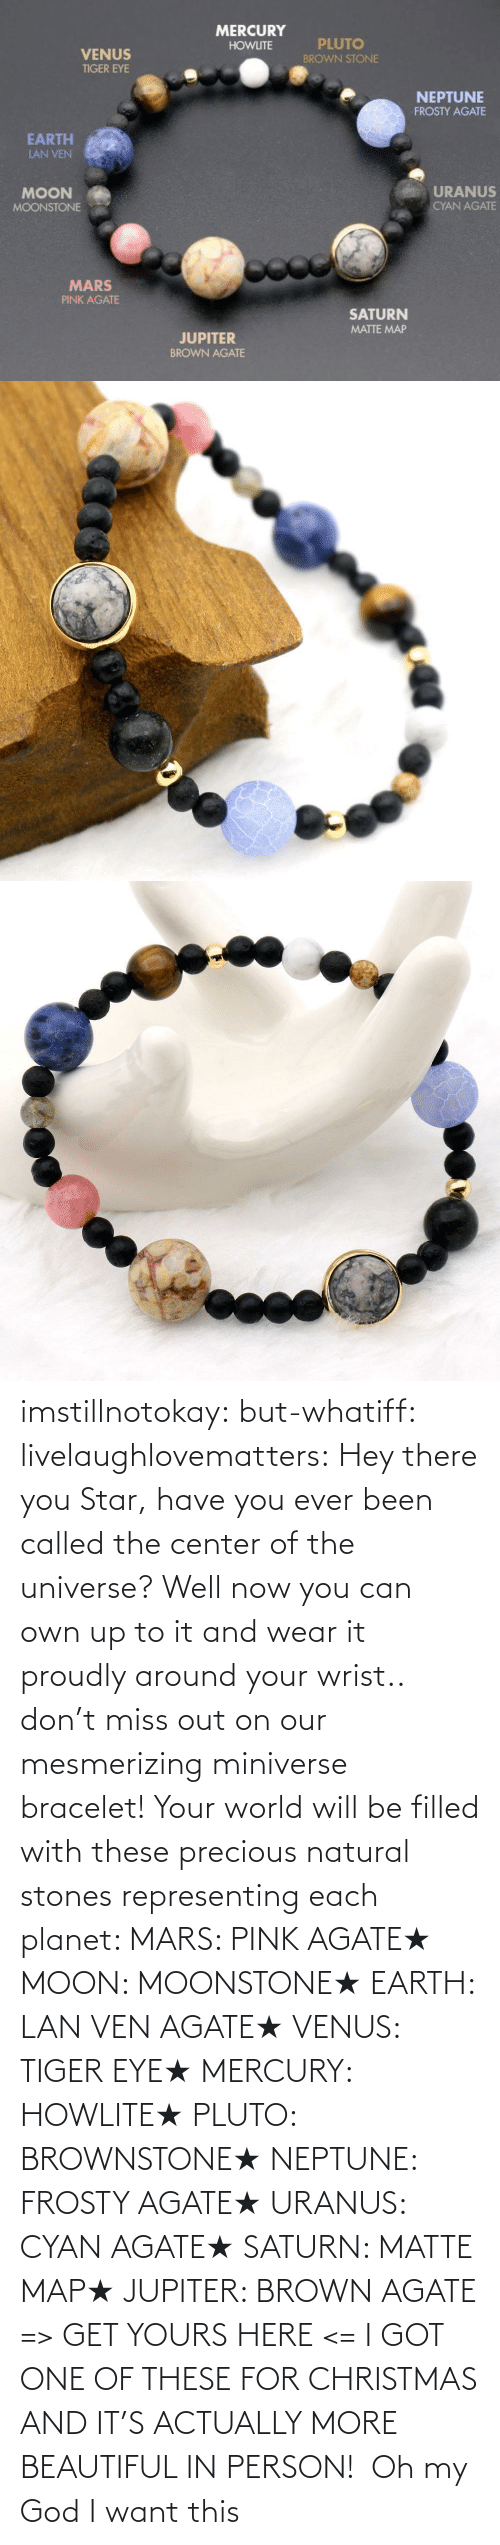 have you ever: imstillnotokay: but-whatiff:  livelaughlovematters:  Hey there you Star, have you ever been called the center of the universe? Well now you can own up to it and wear it proudly around your wrist.. don't miss out on our mesmerizing miniverse bracelet! Your world will be filled with these precious natural stones representing each planet:  MARS: PINK AGATE★ MOON: MOONSTONE★ EARTH: LAN VEN AGATE★ VENUS: TIGER EYE★ MERCURY: HOWLITE★ PLUTO: BROWNSTONE★ NEPTUNE: FROSTY AGATE★ URANUS: CYAN AGATE★ SATURN: MATTE MAP★ JUPITER: BROWN AGATE => GET YOURS HERE <=  I GOT ONE OF THESE FOR CHRISTMAS AND IT'S ACTUALLY MORE BEAUTIFUL IN PERSON!     Oh my God I want this